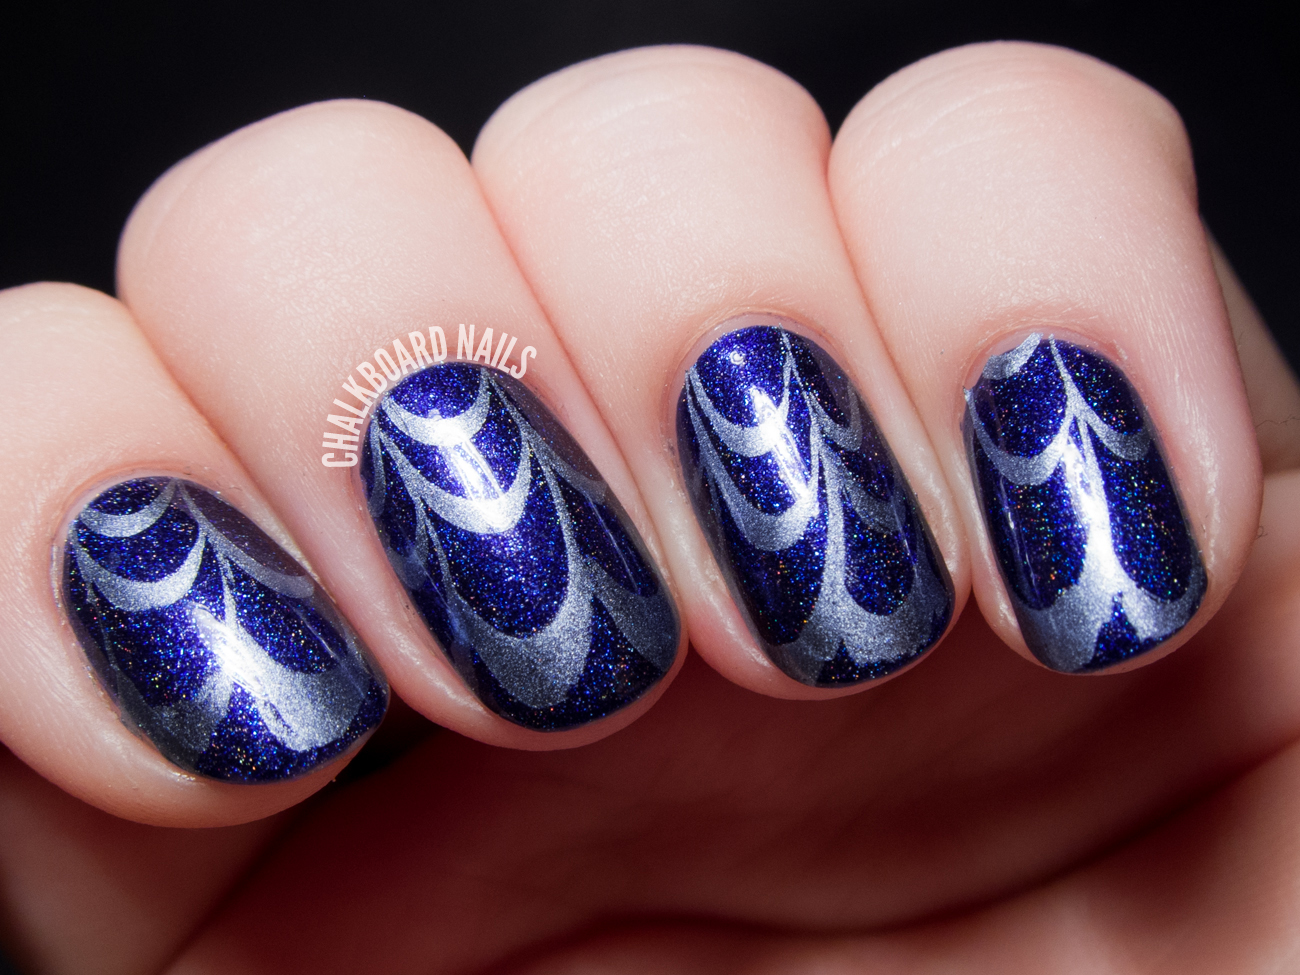 Water Nail Art: A Shortcut I'm Happy To Take: Water Marble Stamping